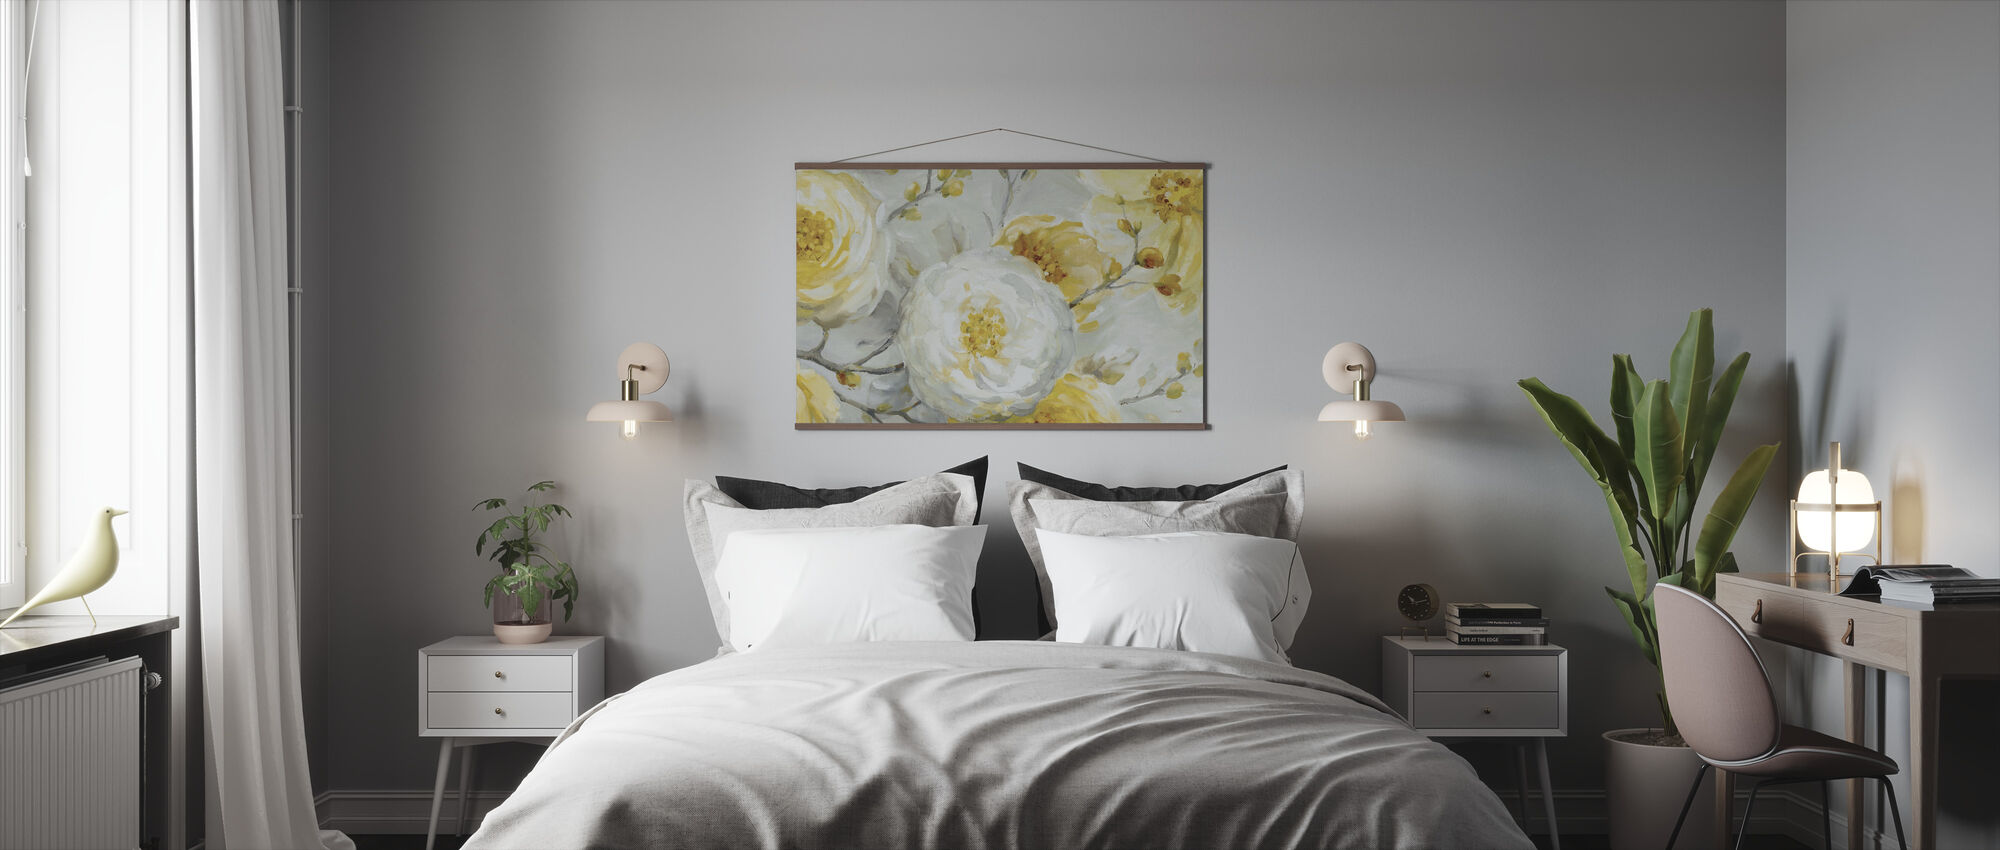 Sunshine - Poster - Bedroom